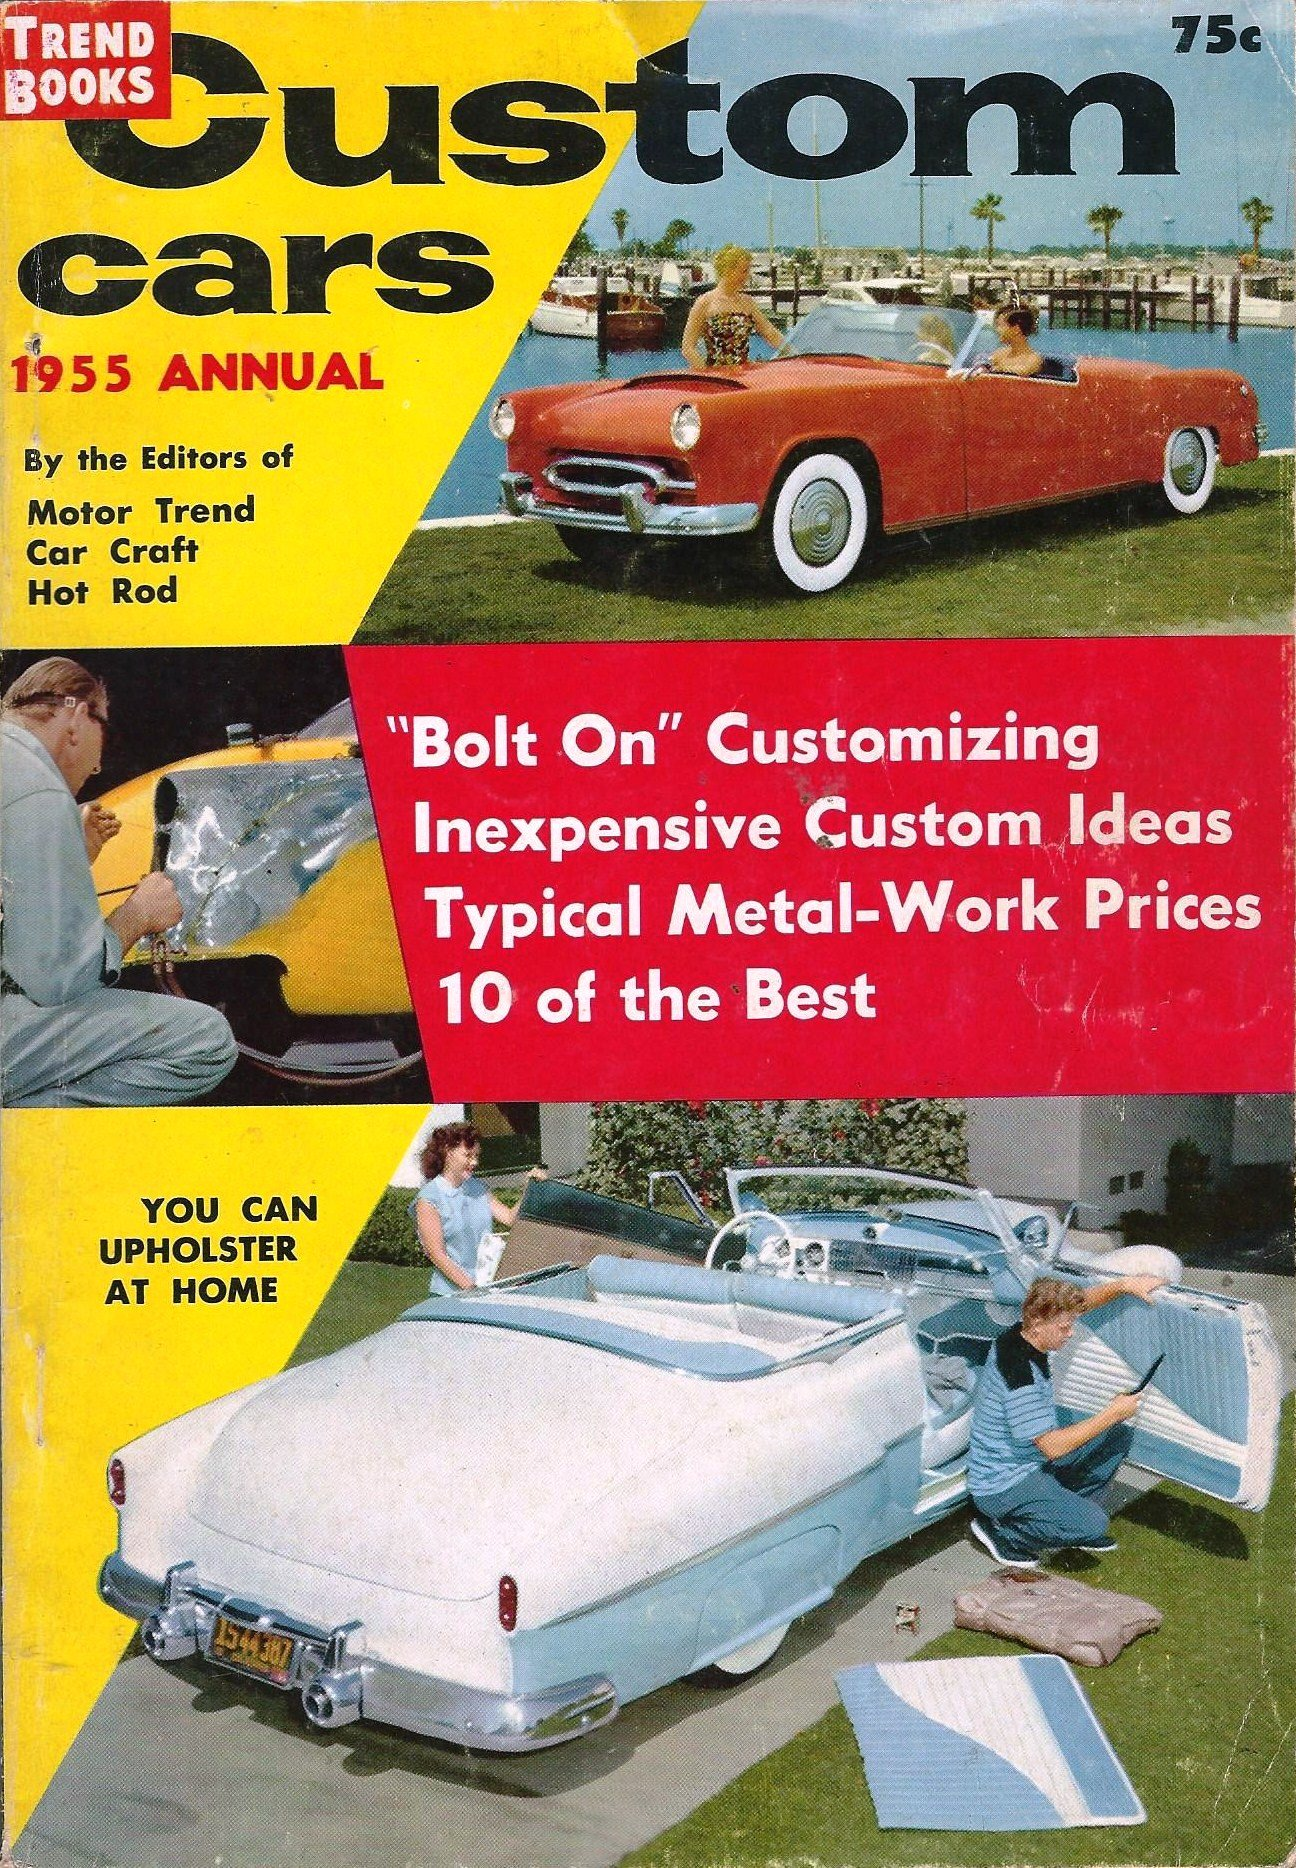 Custom Cars 1955 Annual Trend Books 116 Custom Cars 1955 Annual